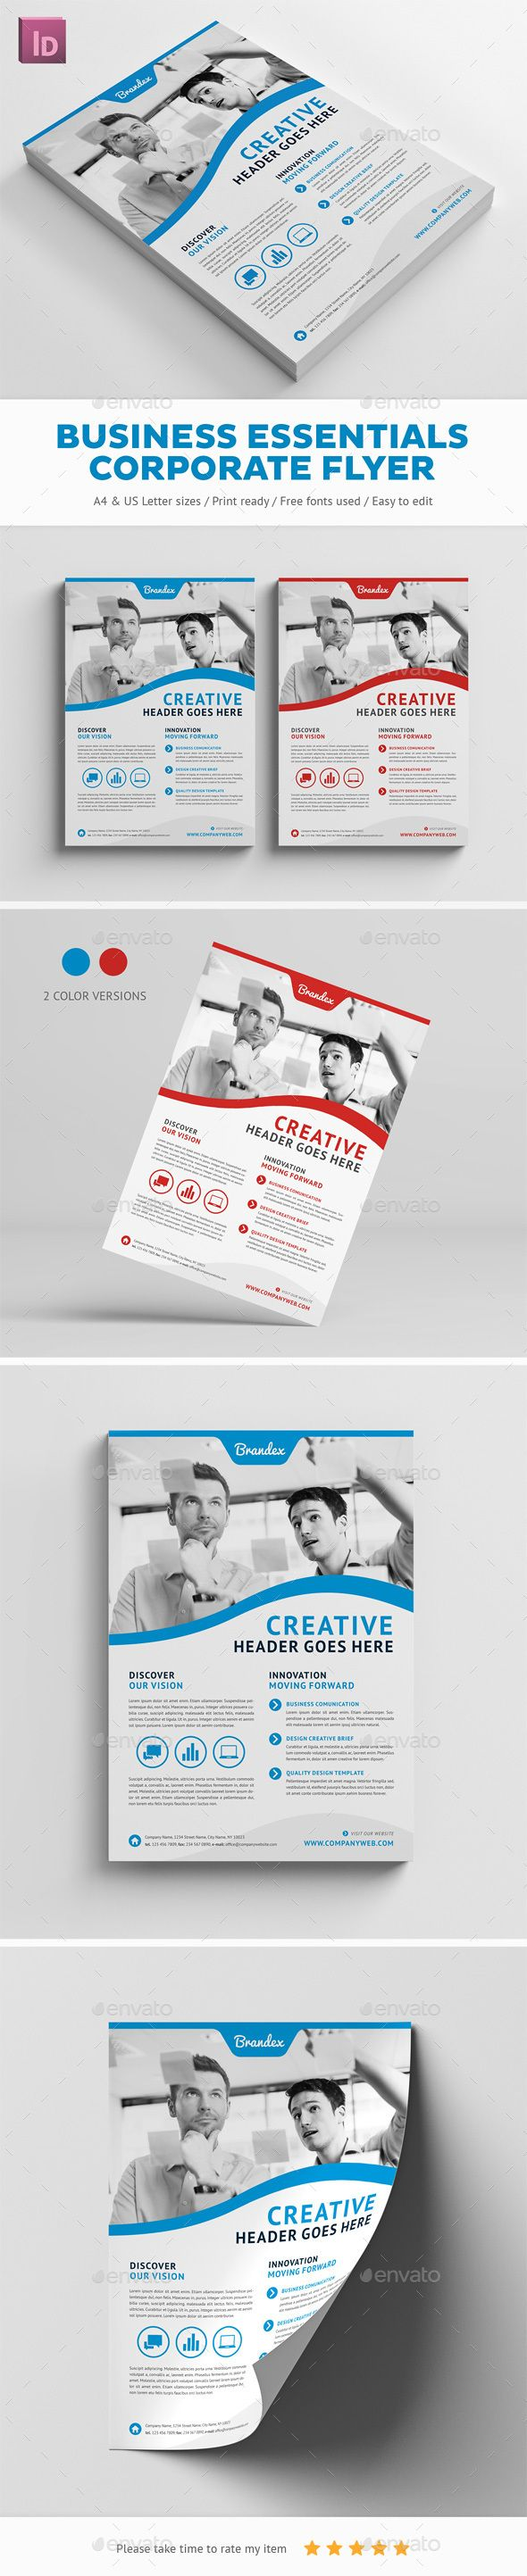 Business Essentials Corporate Flyer — InDesign INDD #template #fresh ...